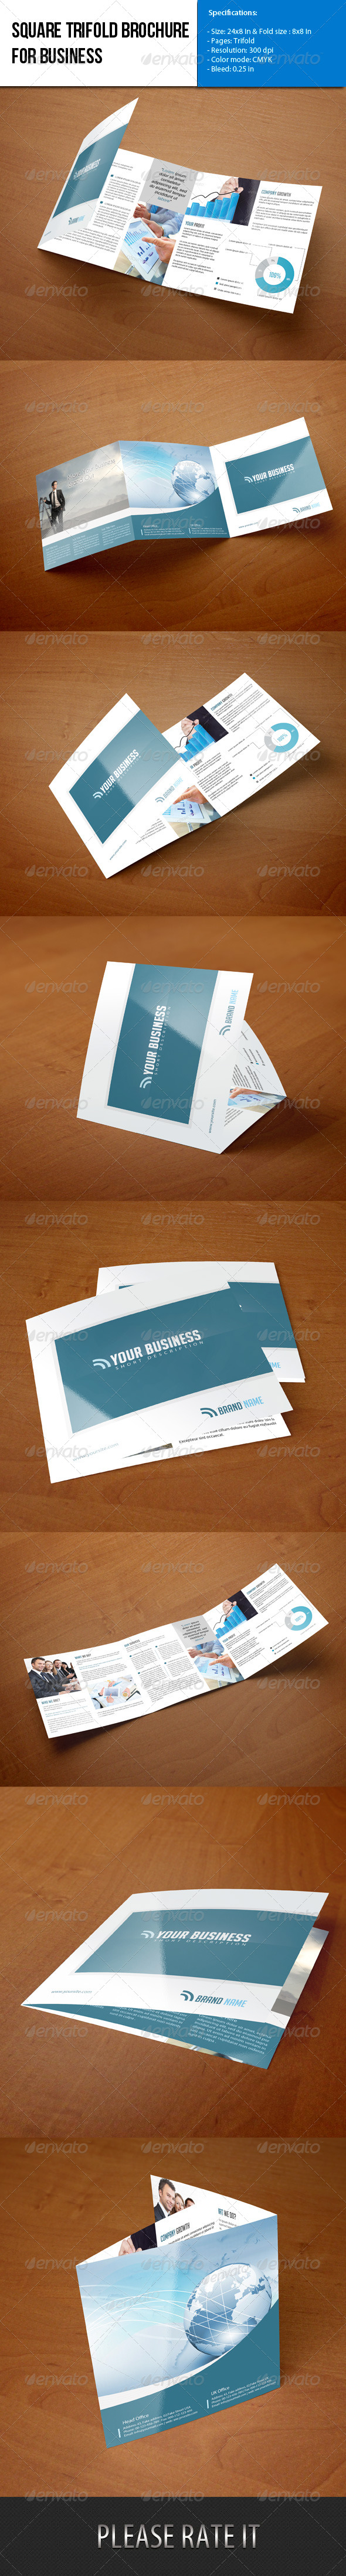 Square Trifold Brochure-Business - Corporate Brochures